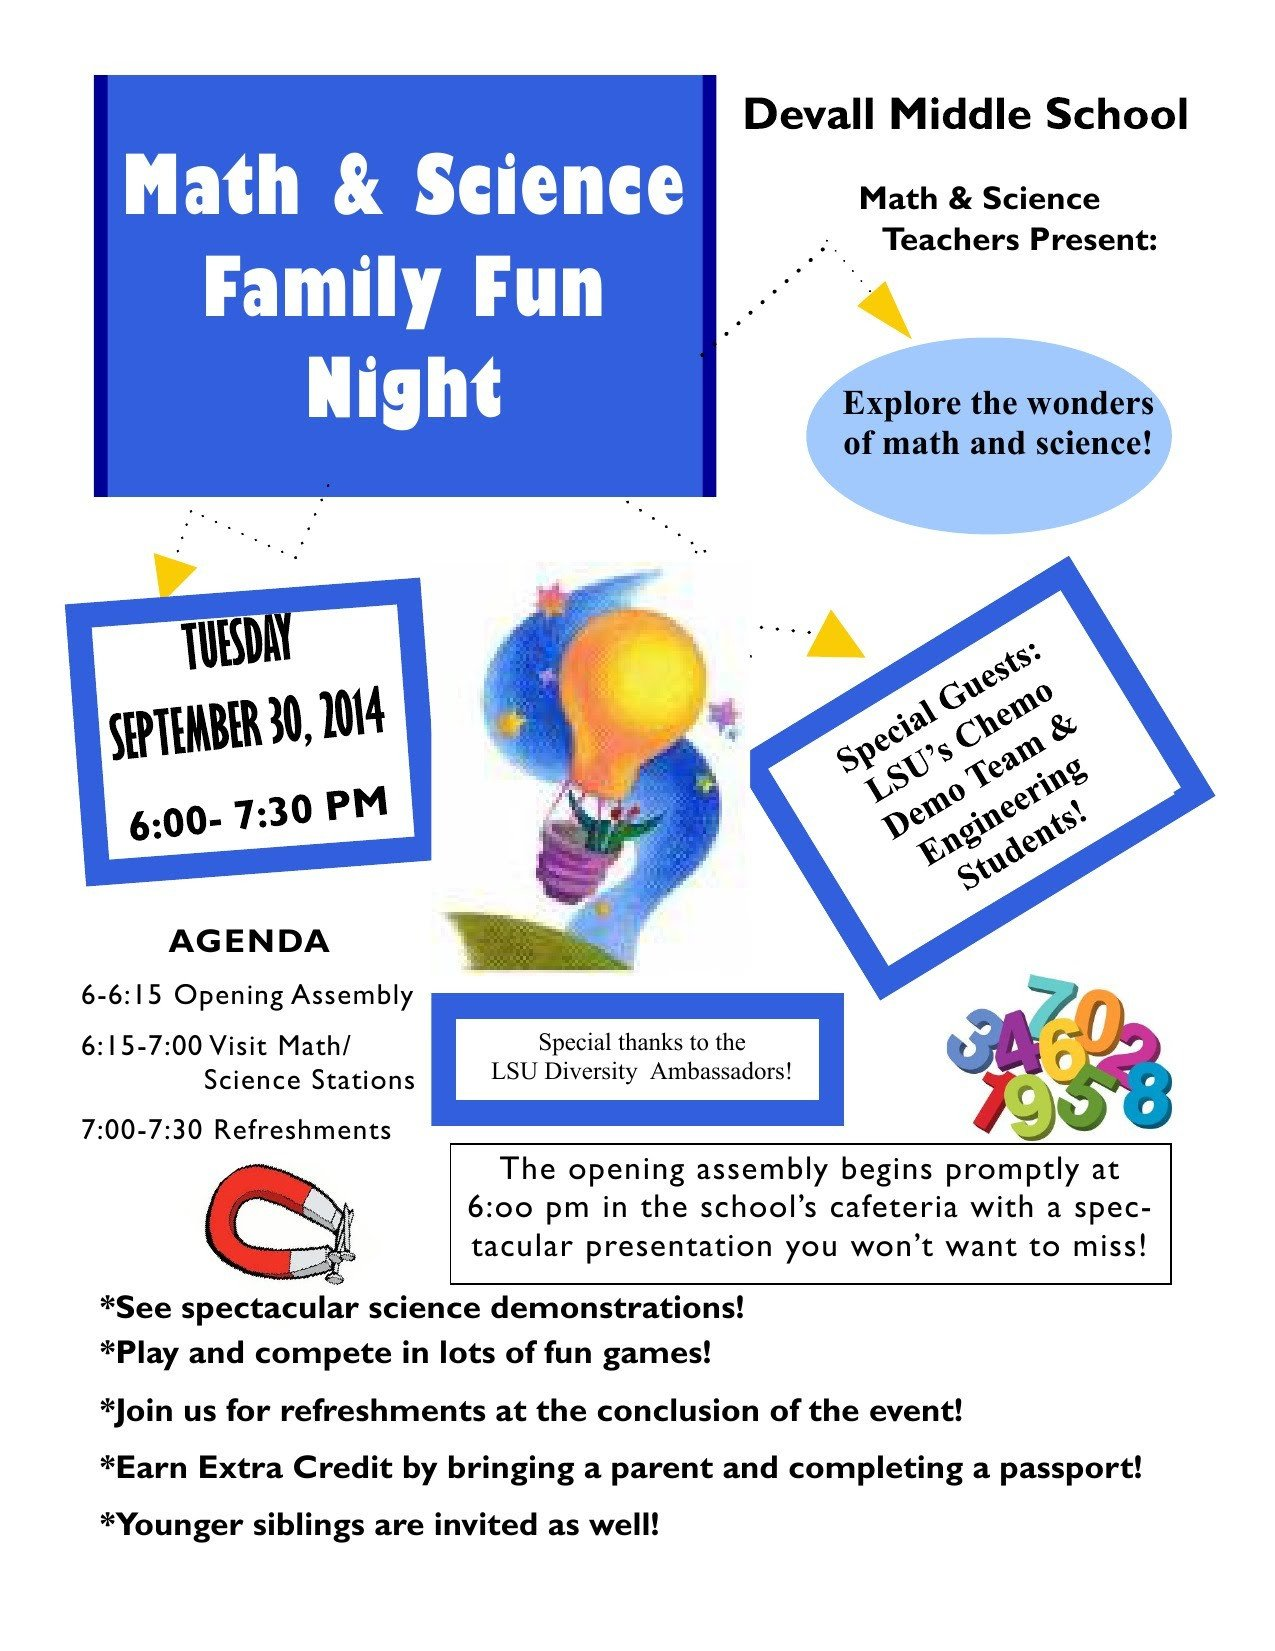 Family Math Night Flyers Math and Science Family Fun Night Devallmiddleschool